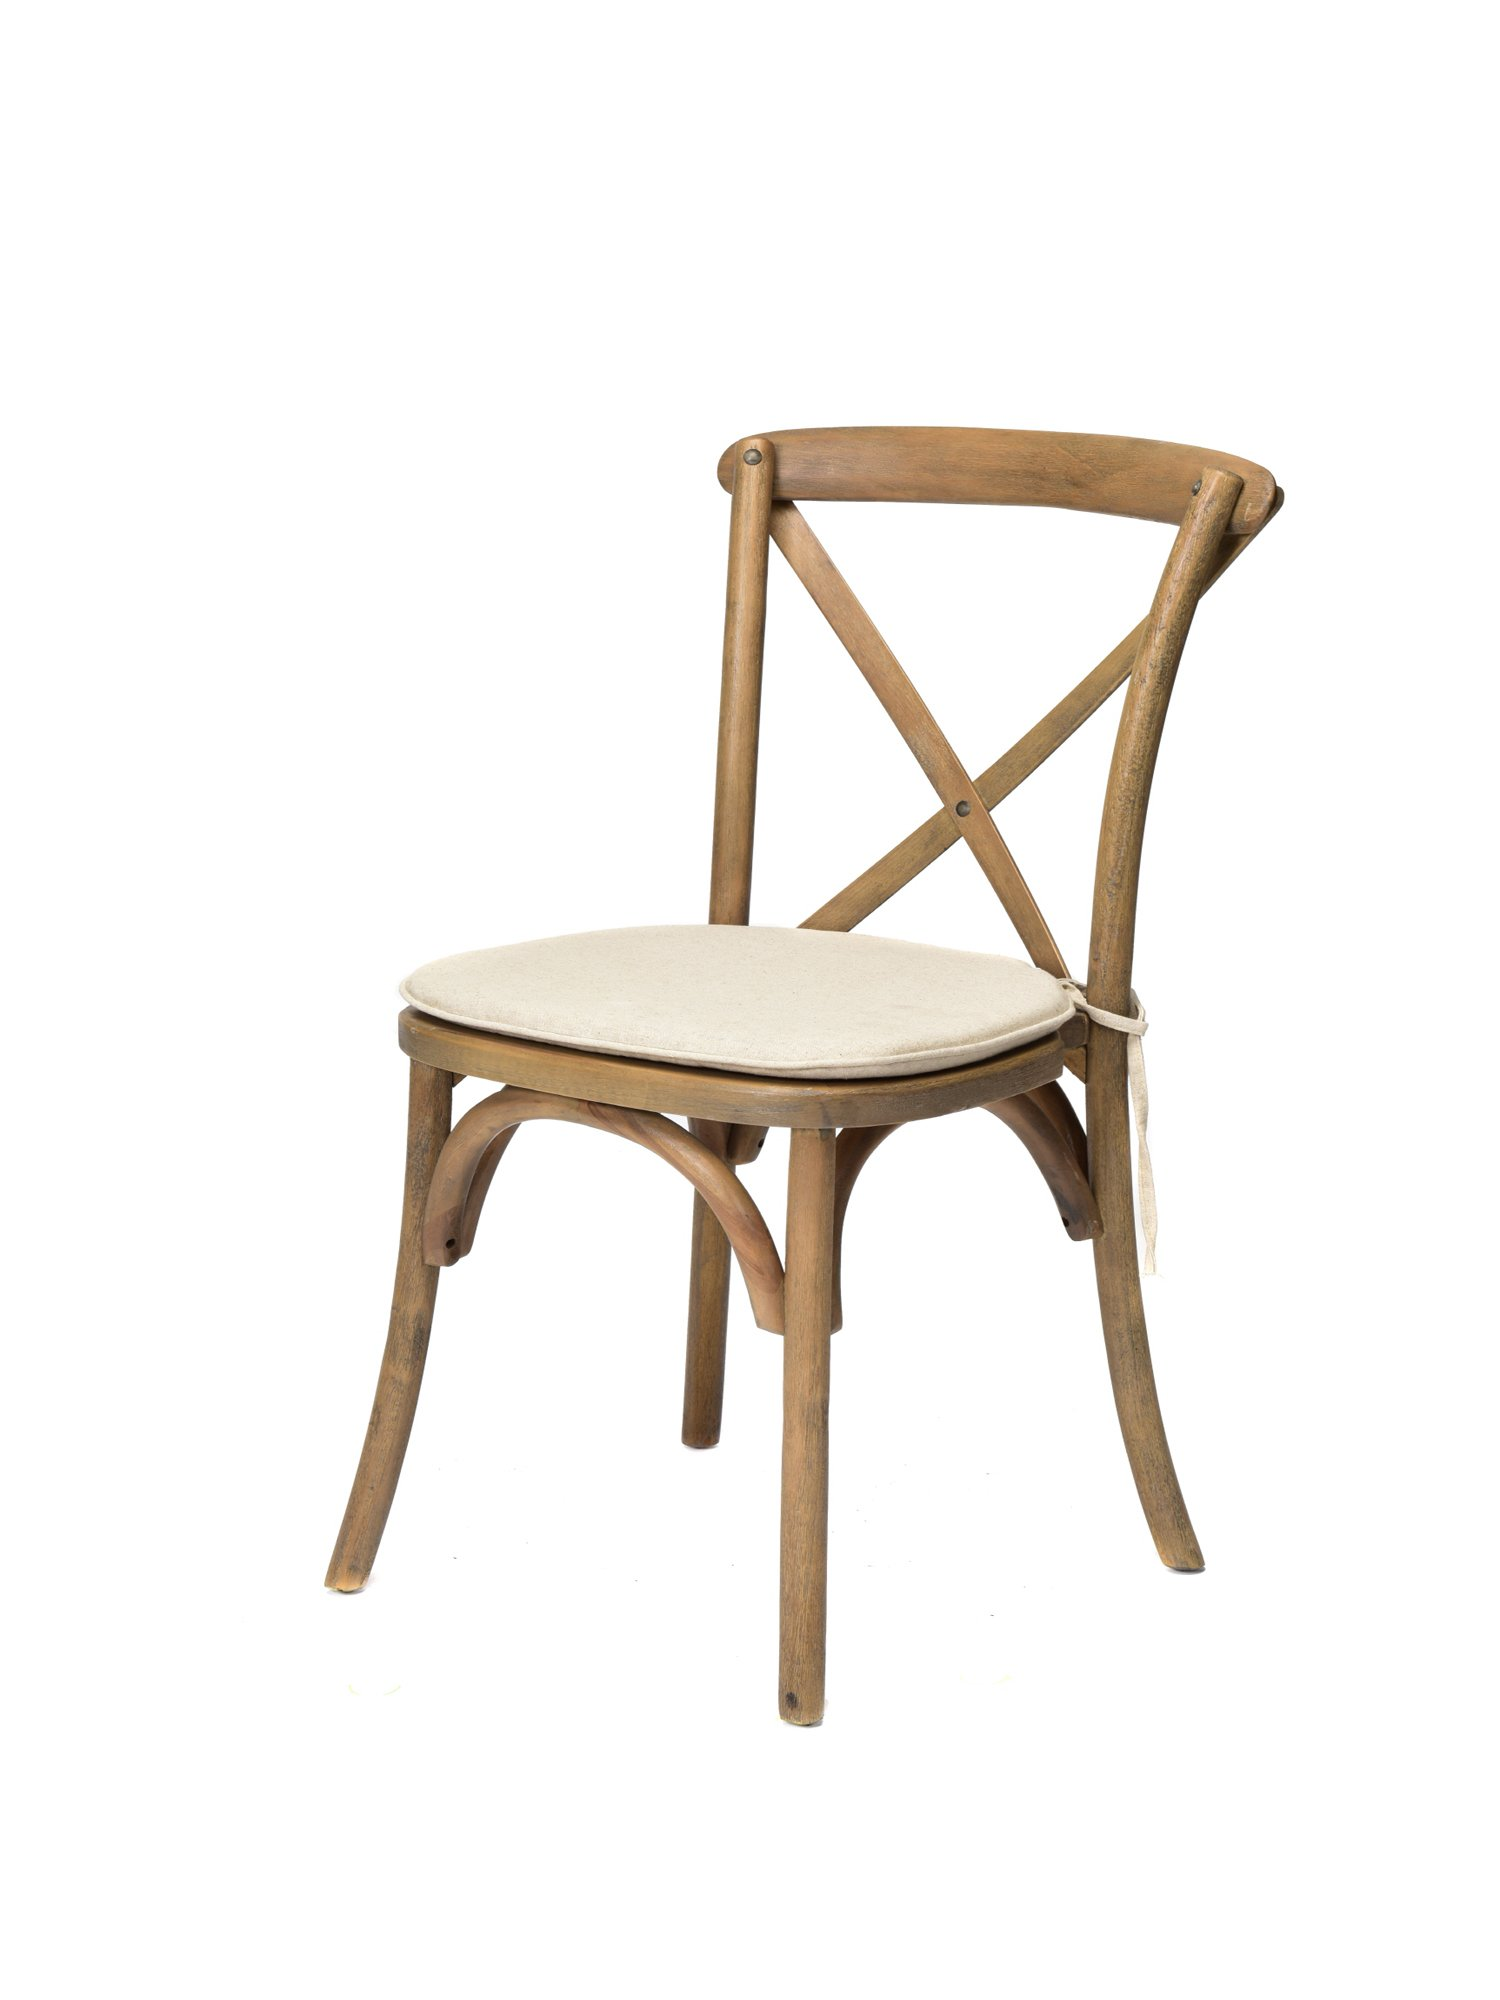 Commercial Seating Products W-700-X02-WH-C Sonoma Crossback Chair Solidwood